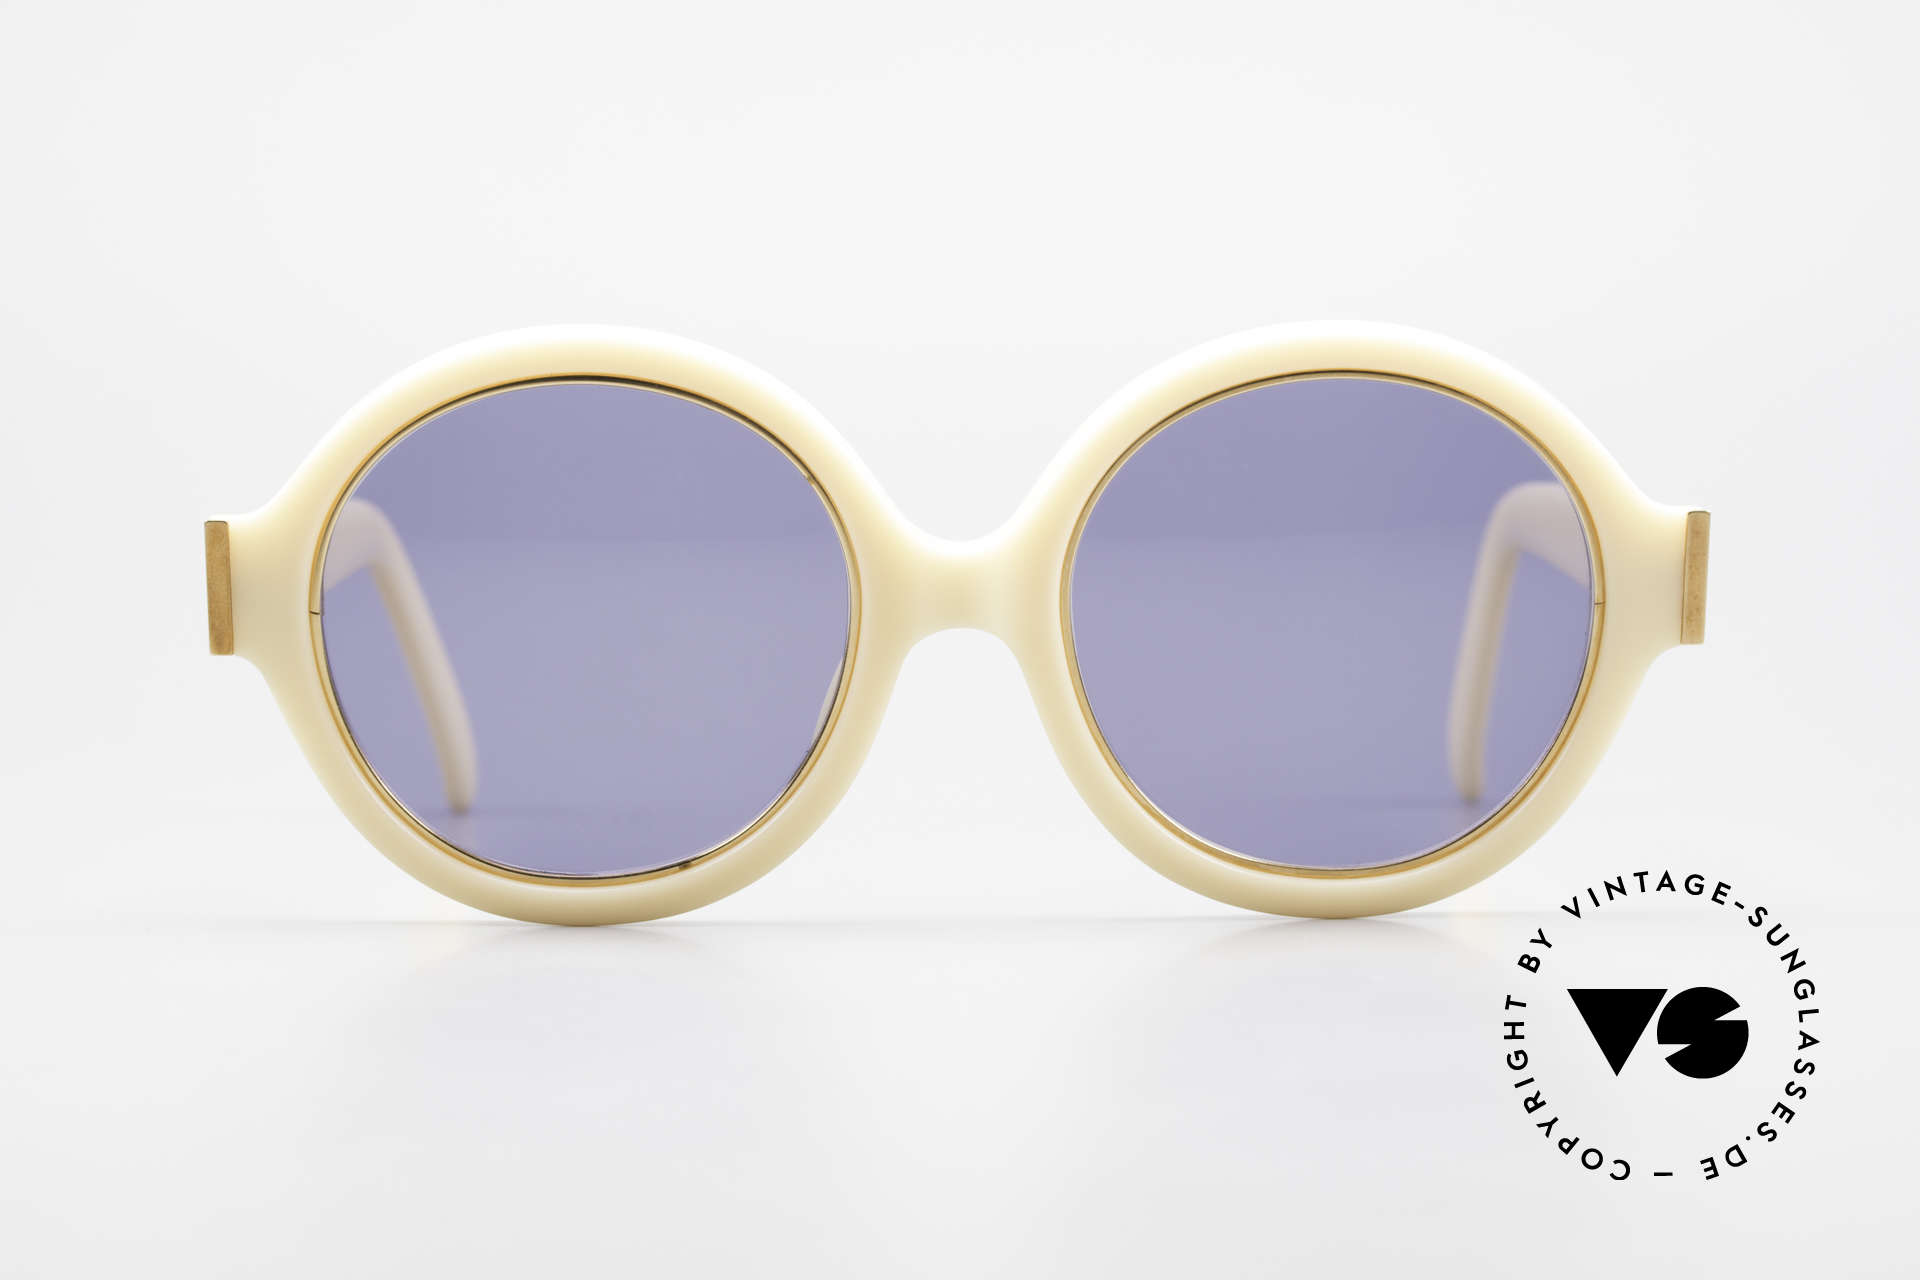 Christian Dior 2446 Round Ladies 80's Sunglasses, glamorous colors & pattern thanks to Optyl material, Made for Women